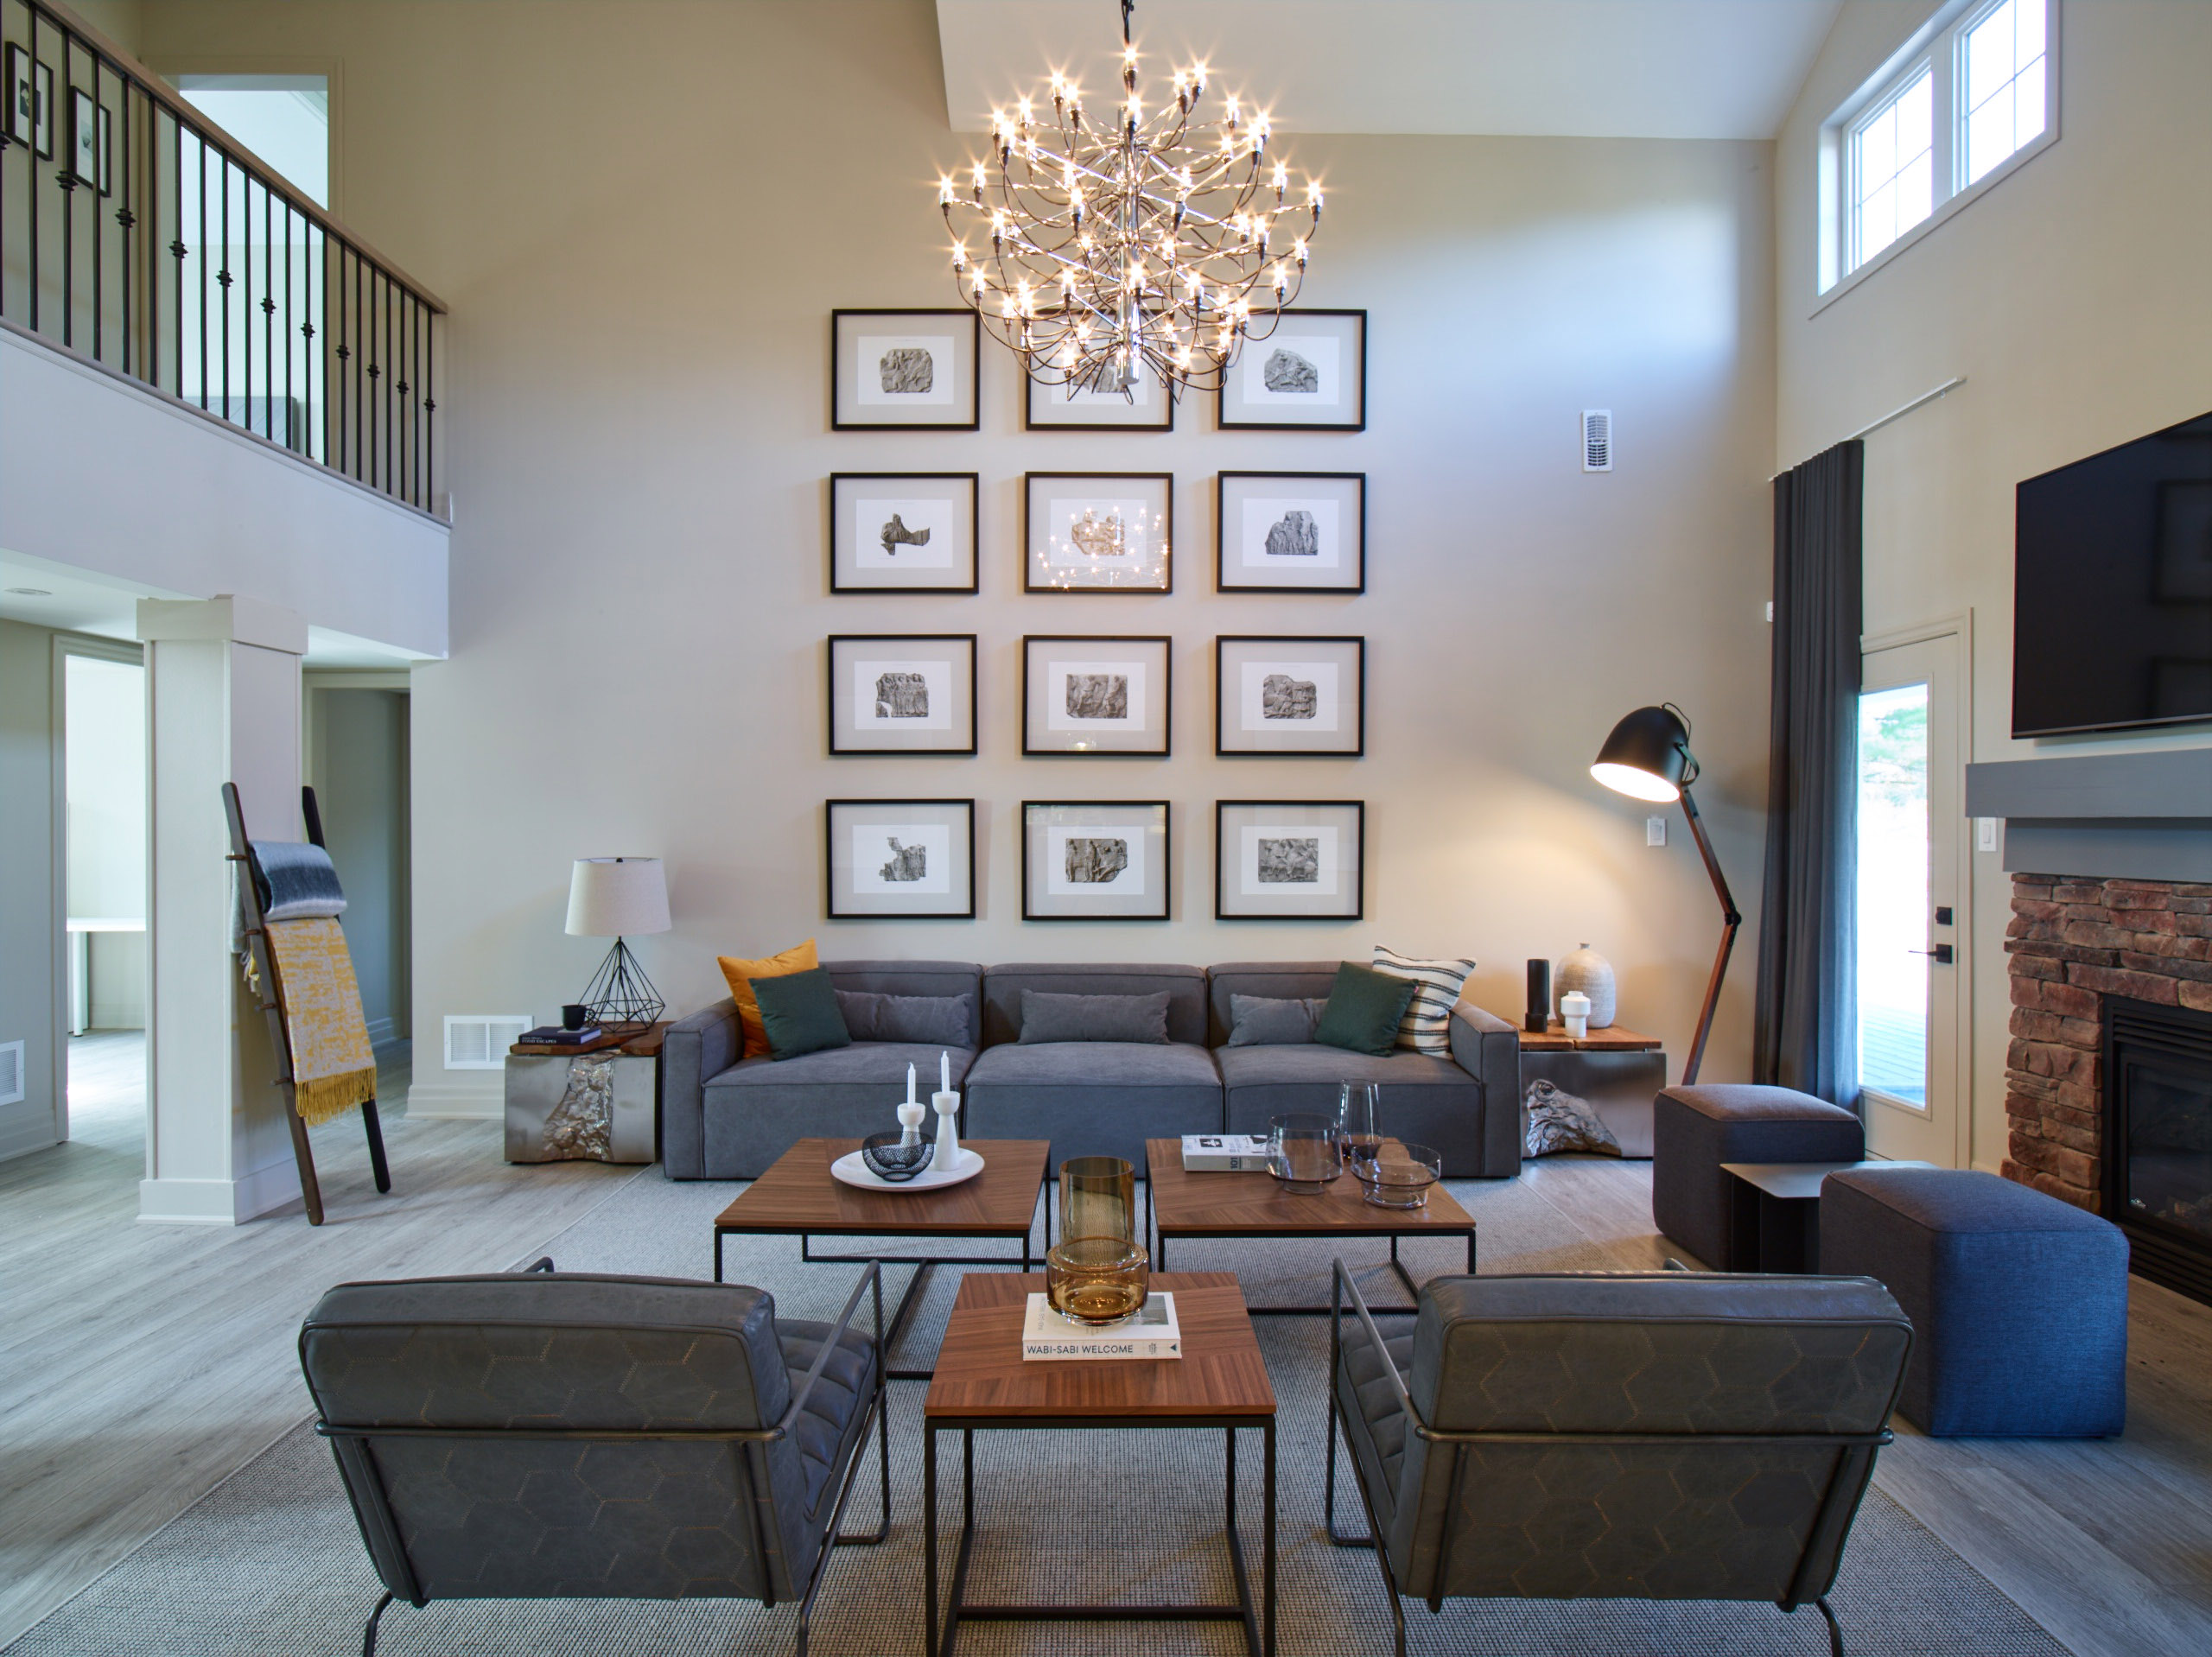 Oak Bay living room with high ceiling, gallery wall with black frames, grey sofa and chairs, and wood tables